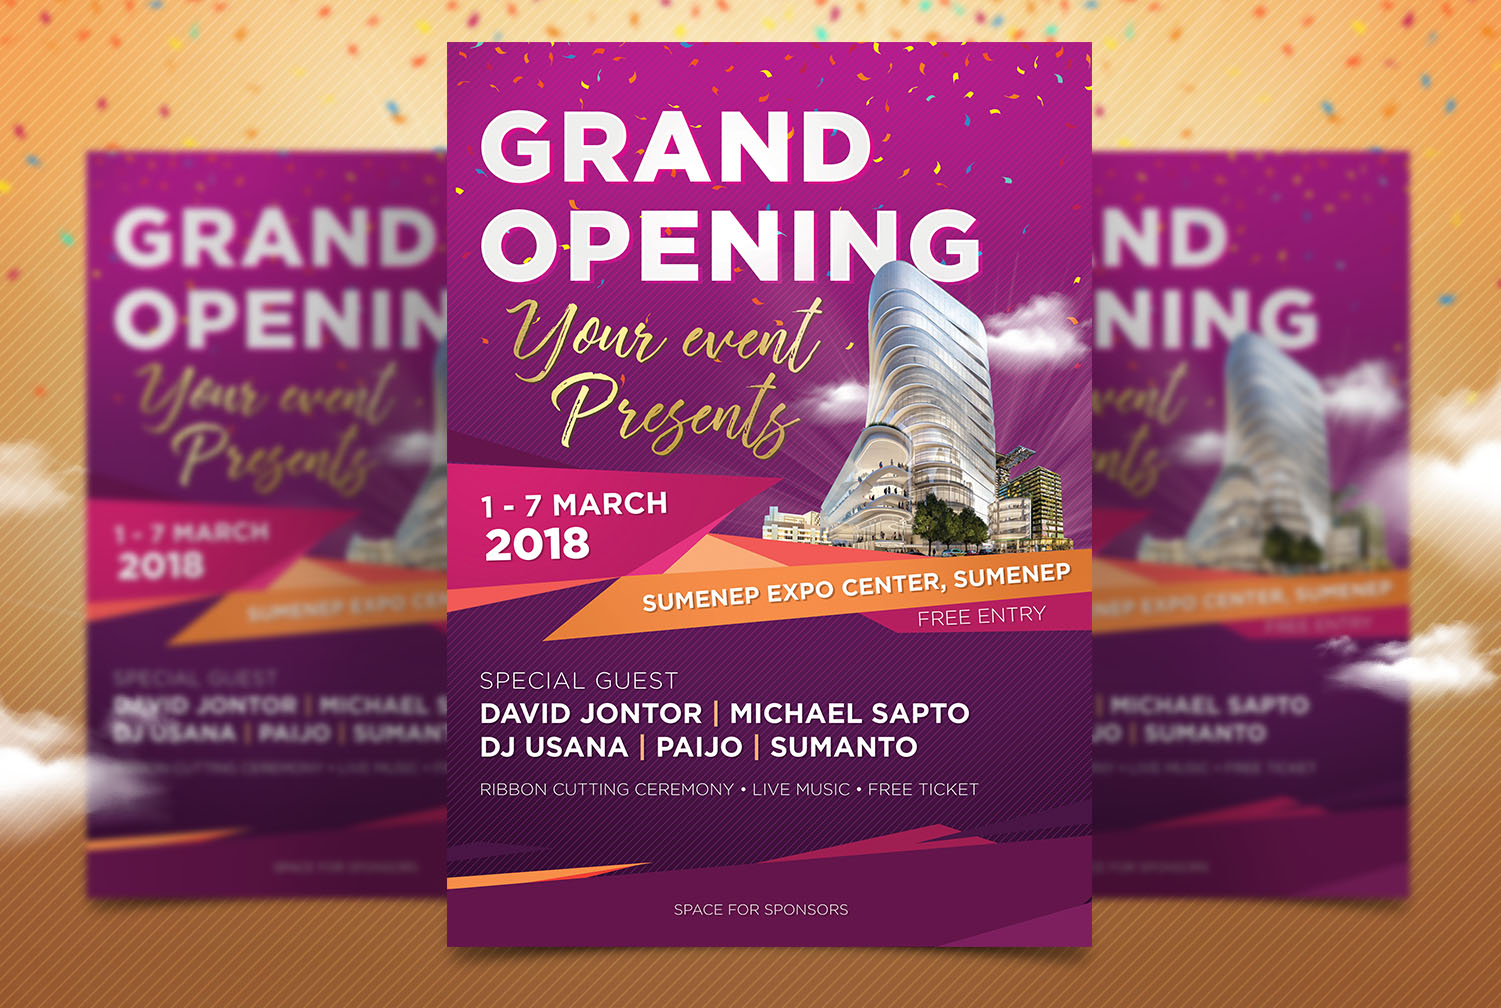 Download Free Grand Opening Multipurposes Poster Graphic By Tomatstudio for Cricut Explore, Silhouette and other cutting machines.